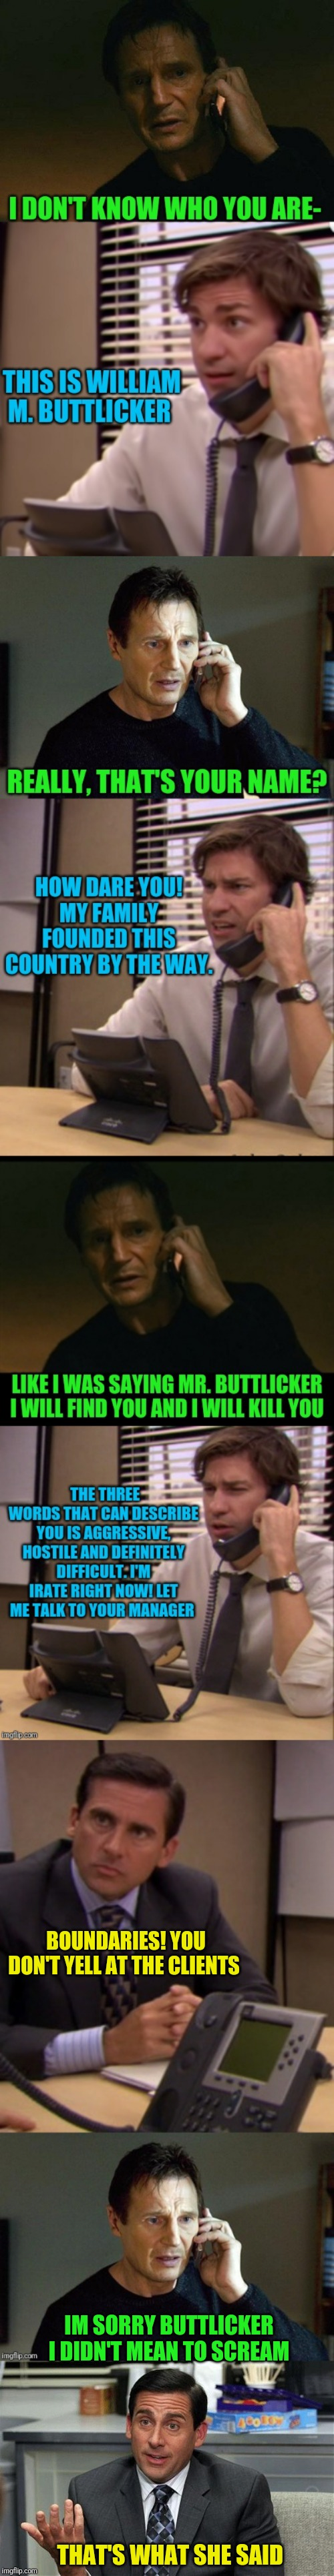 Buttlicker!! | BOUNDARIES! YOU DON'T YELL AT THE CLIENTS IM SORRY BUTTLICKER I DIDN'T MEAN TO SCREAM THAT'S WHAT SHE SAID | image tagged in that's what she said,the office,liam neeson taken,buttlicker | made w/ Imgflip meme maker